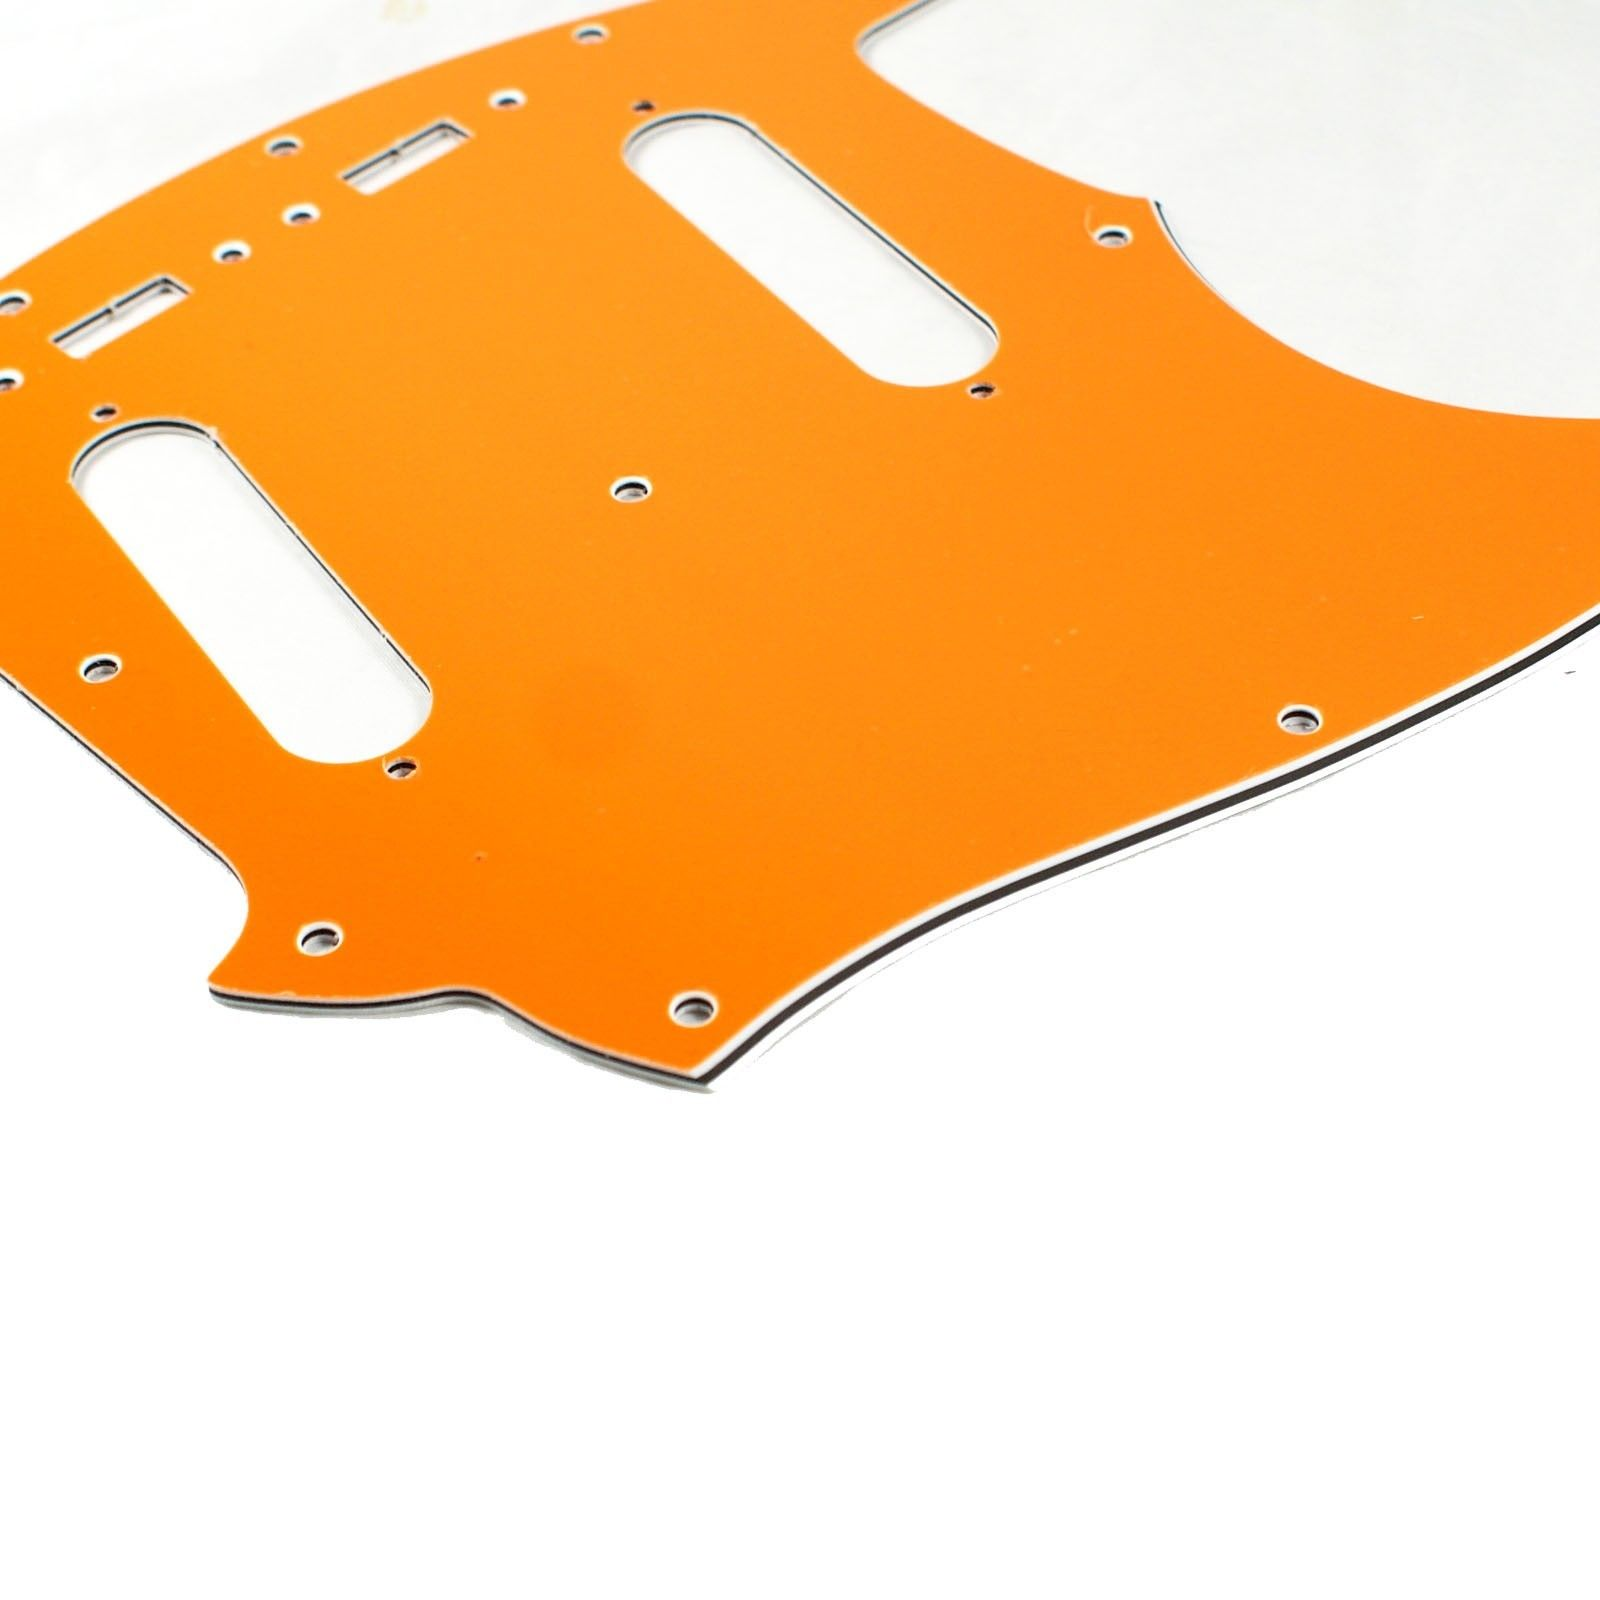 (E66) Custom Guitar Pickguard Fits Mustang Classic Series style ,4 Ply Orange